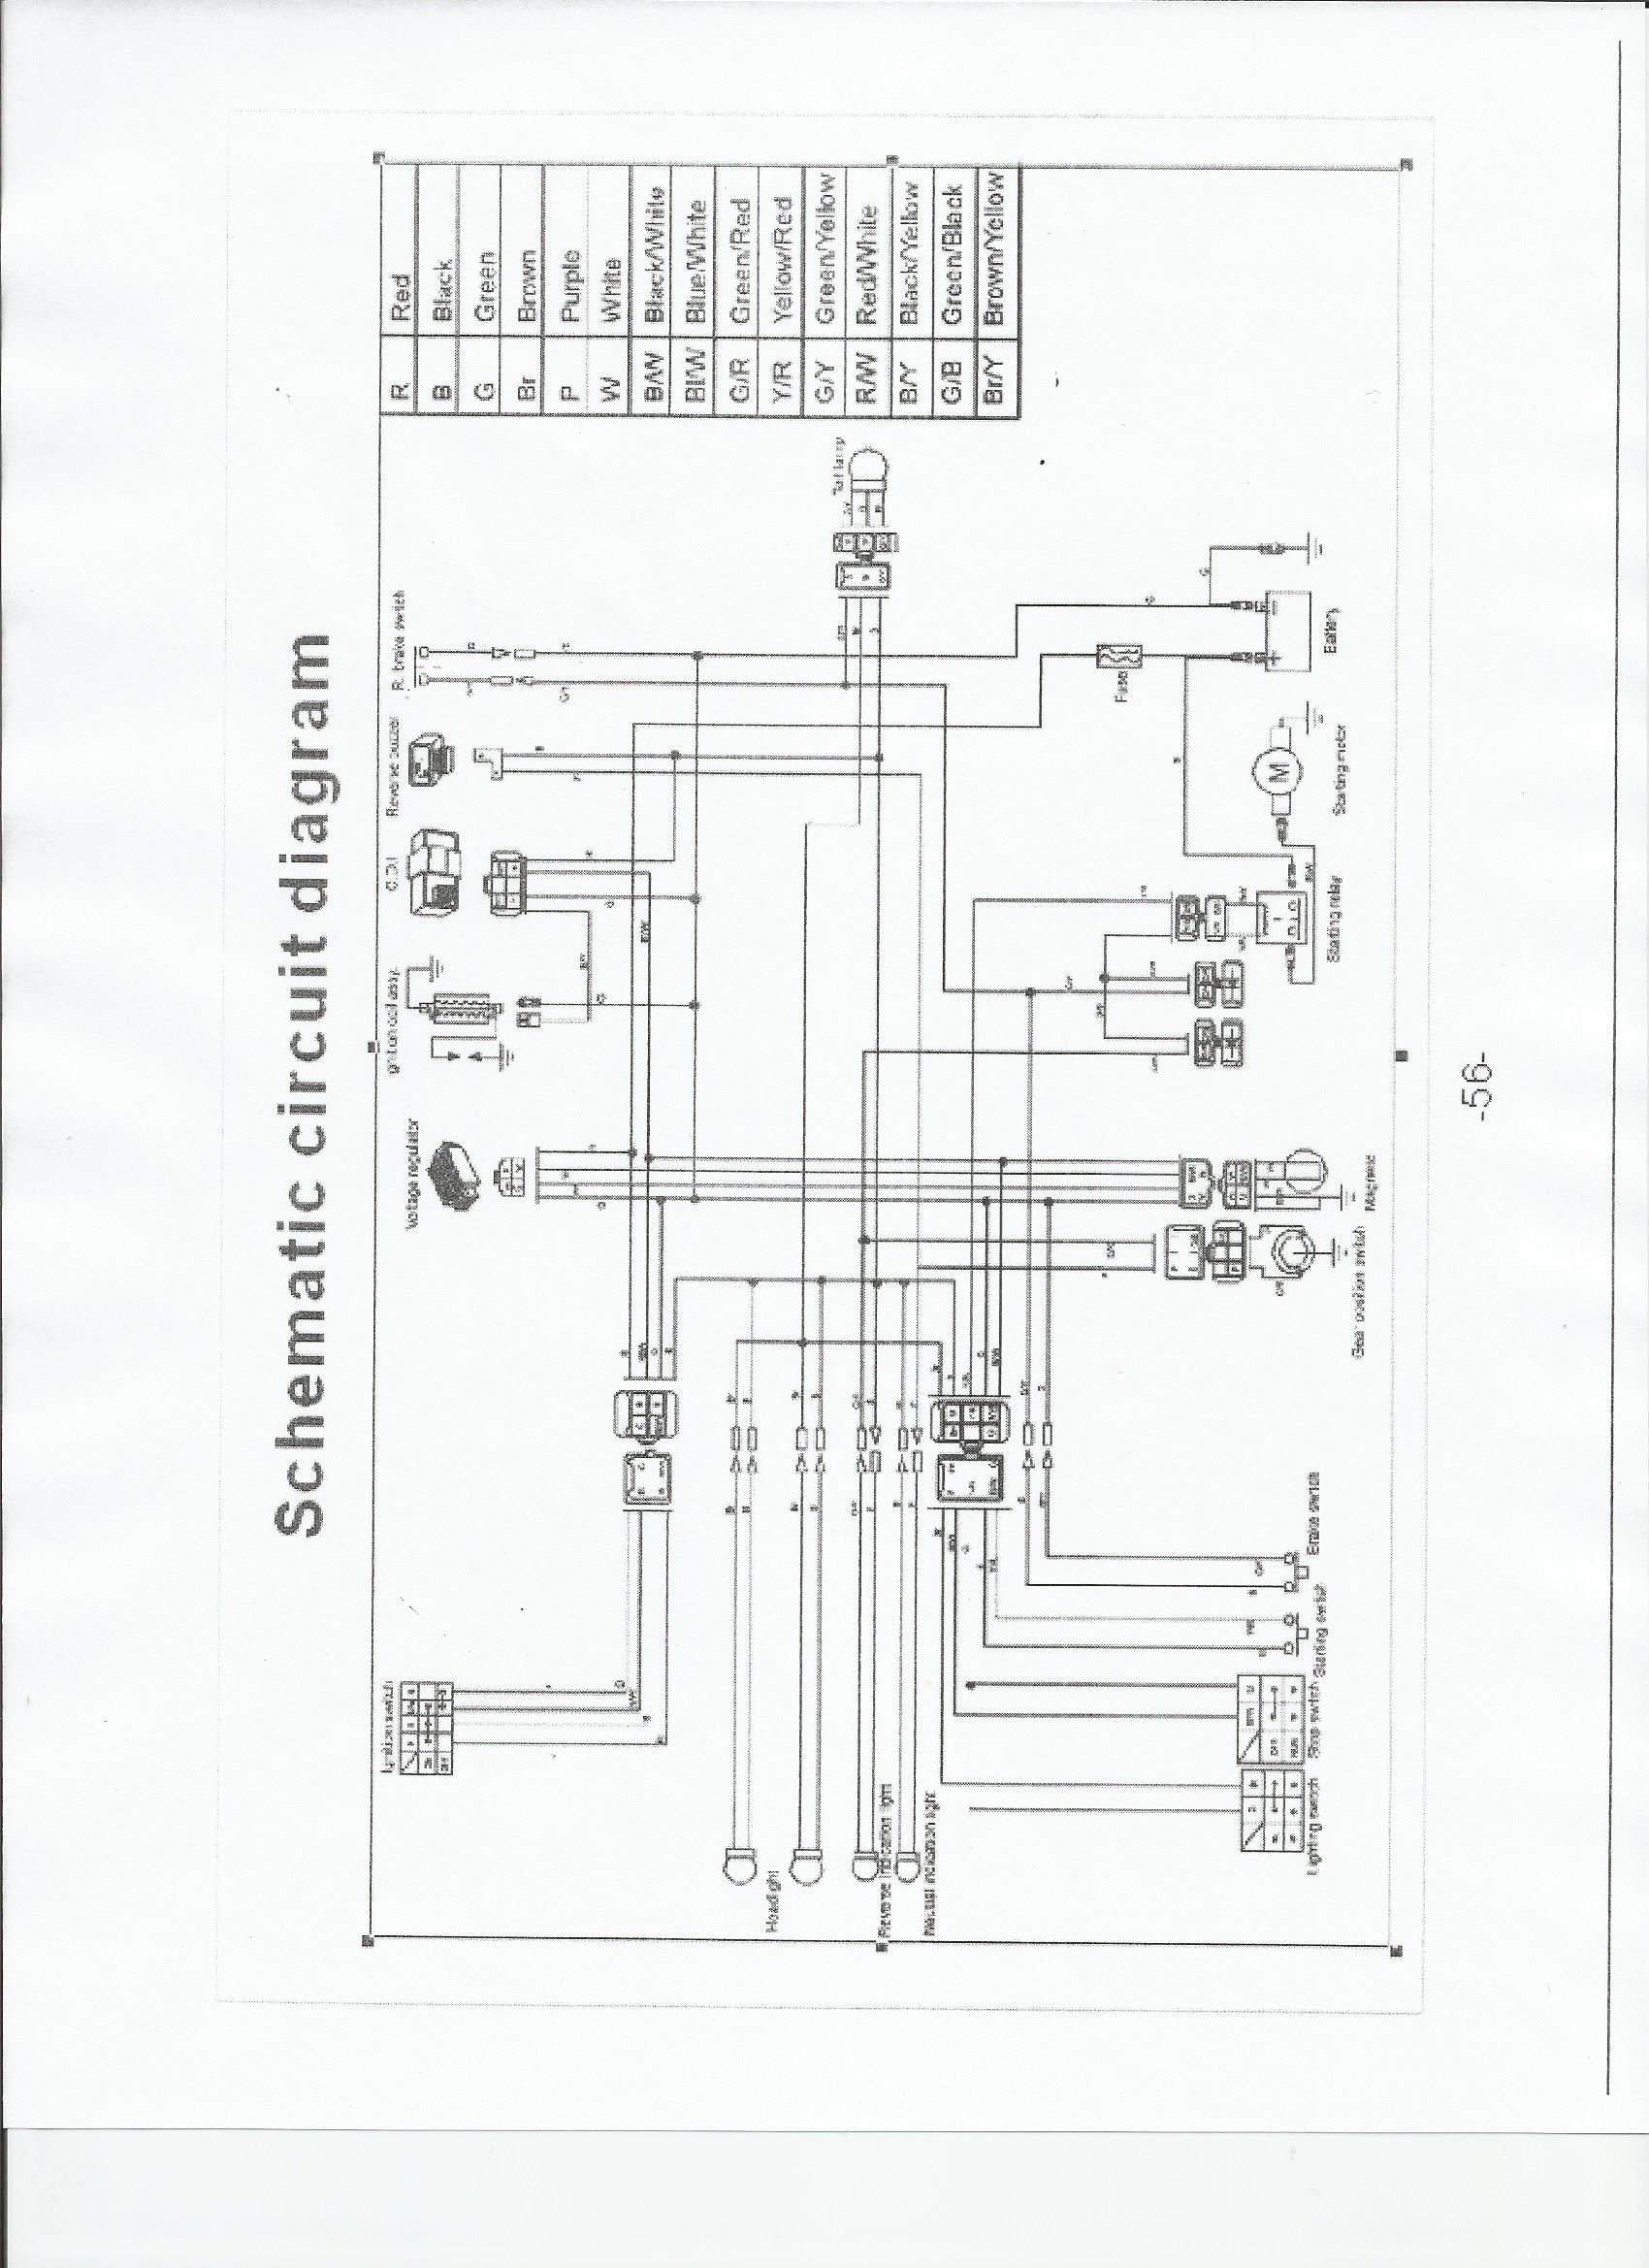 Taotao mini and youth atv wiring schematic familygokarts support tao tao wiring schematicg asfbconference2016 Choice Image